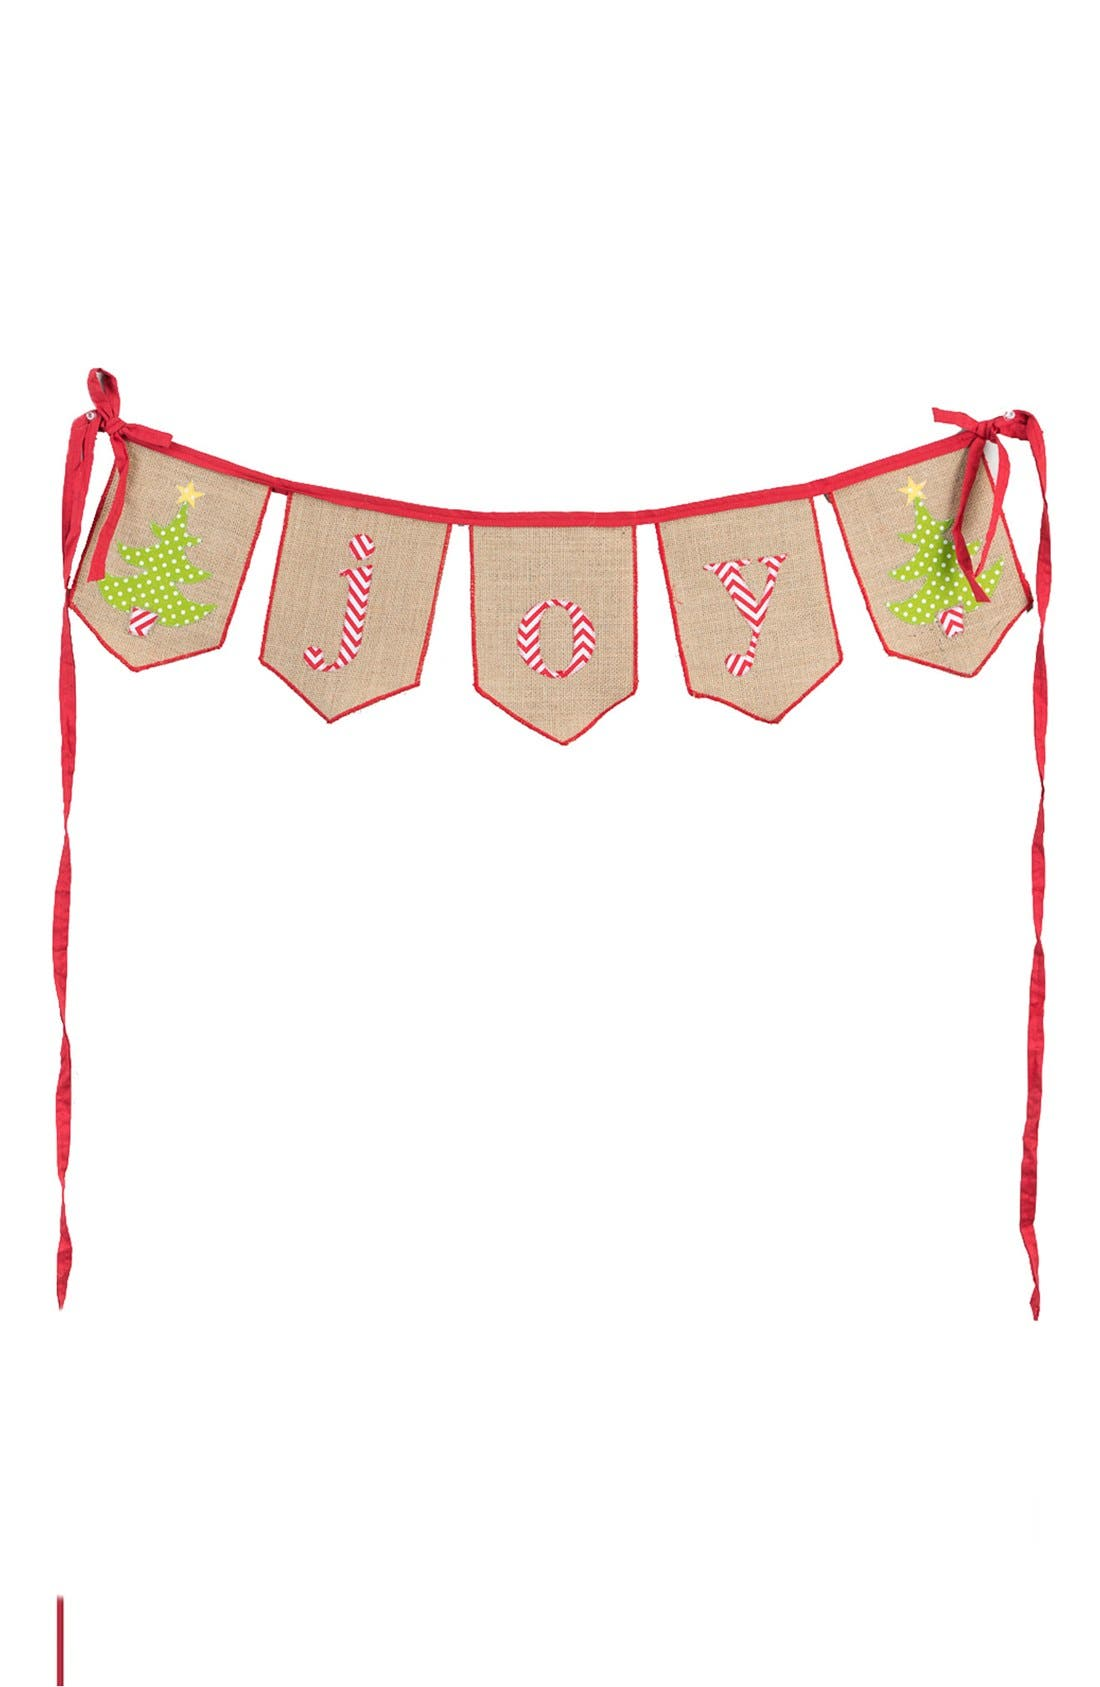 Alternate Image 1 Selected - Glory Haus 'Joy' Burlap Banner